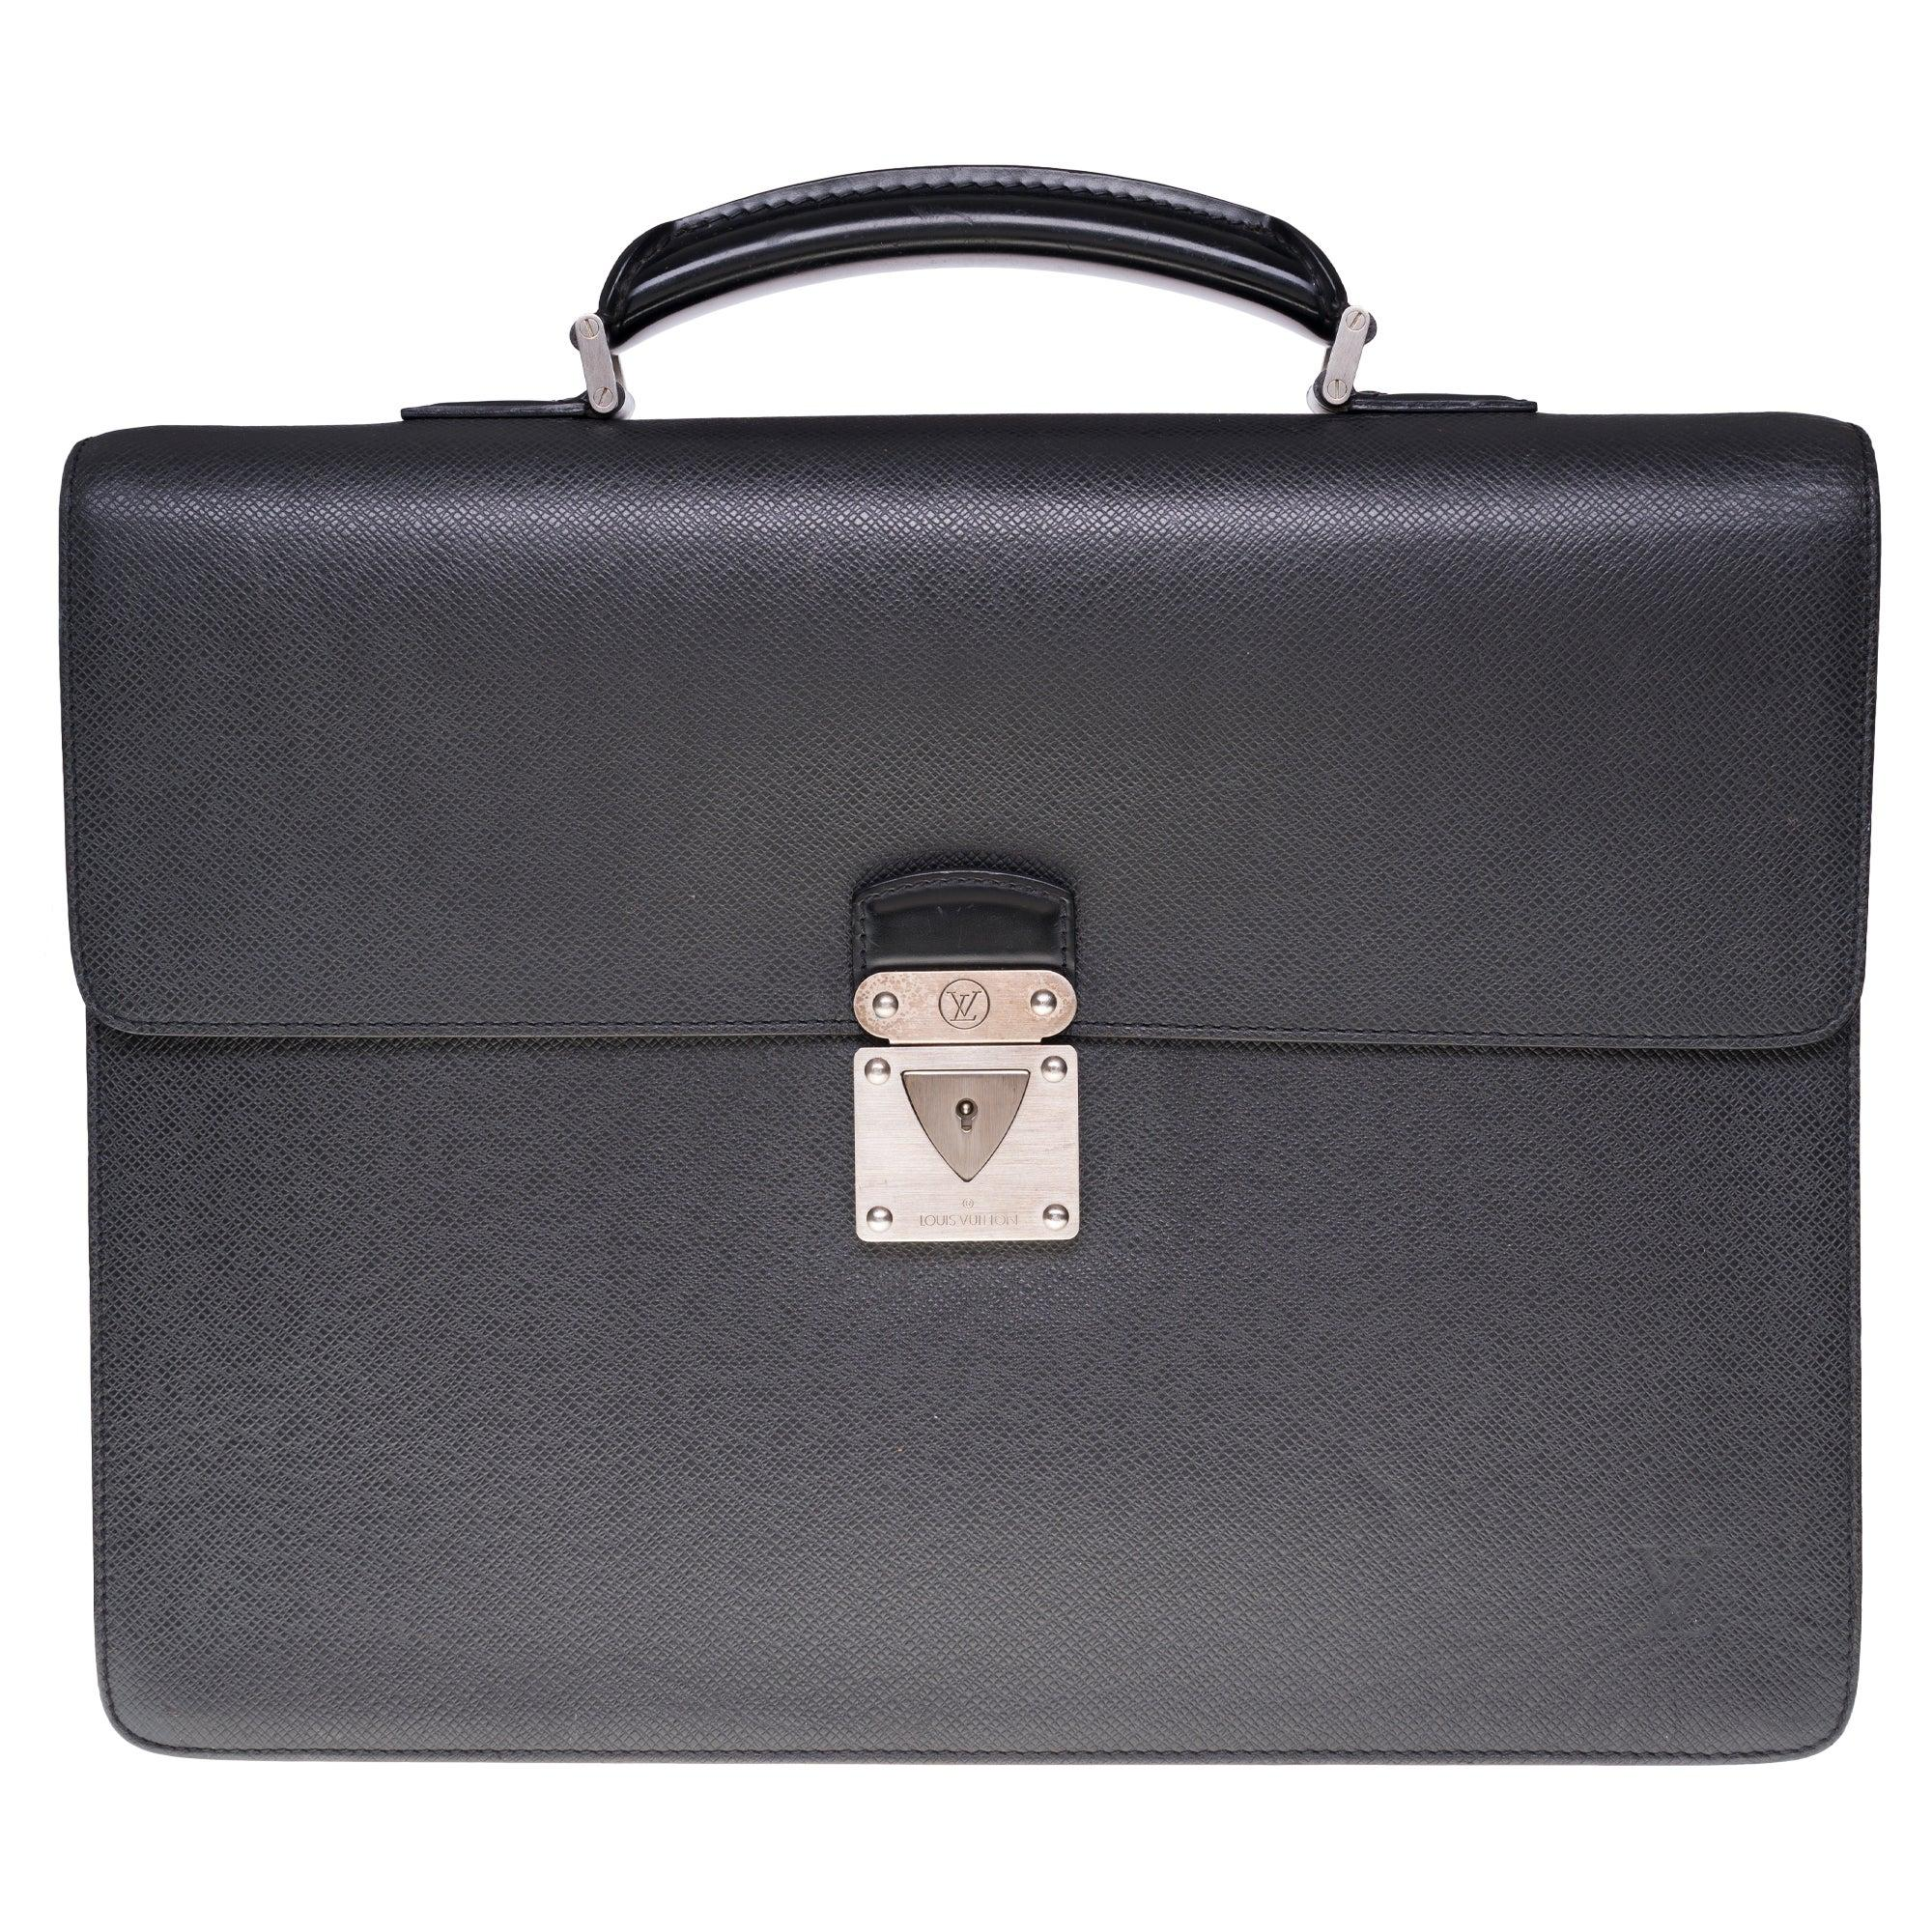 """Louis Vuitton """"Robusto"""" Satchel in grey Taïga leather and silver hardware"""